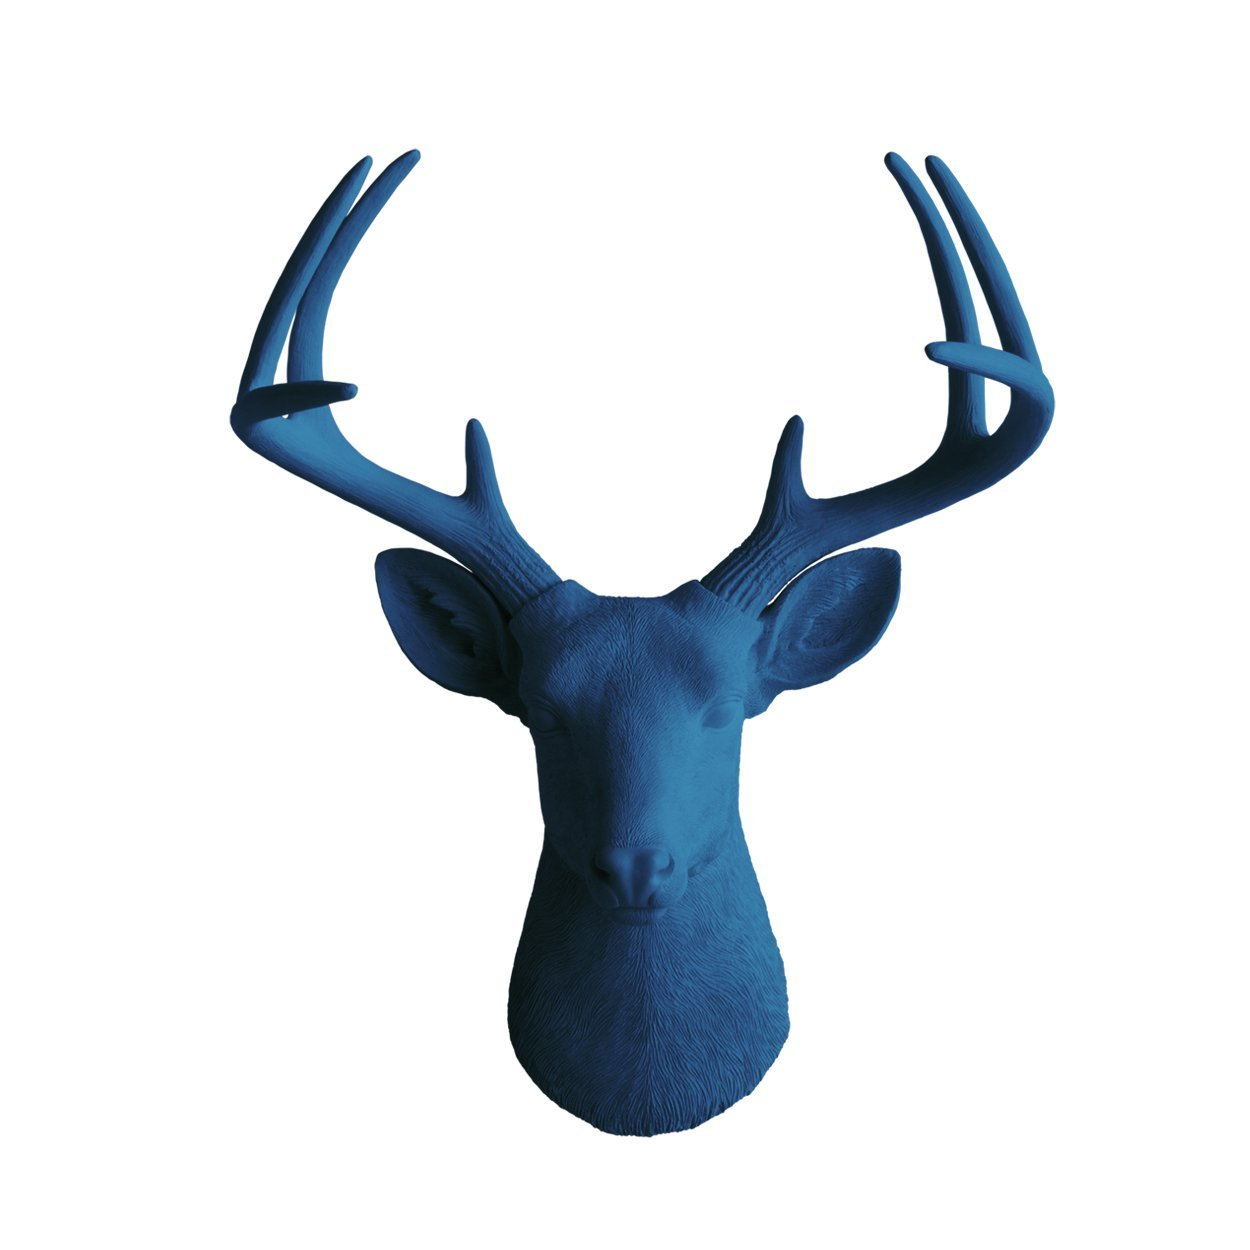 Cheap Deer Head, Find Deer Head Deals On Line At Alibaba Pertaining To 2019 Large Deer Head Faux Taxidermy Wall Decor (Gallery 14 of 20)